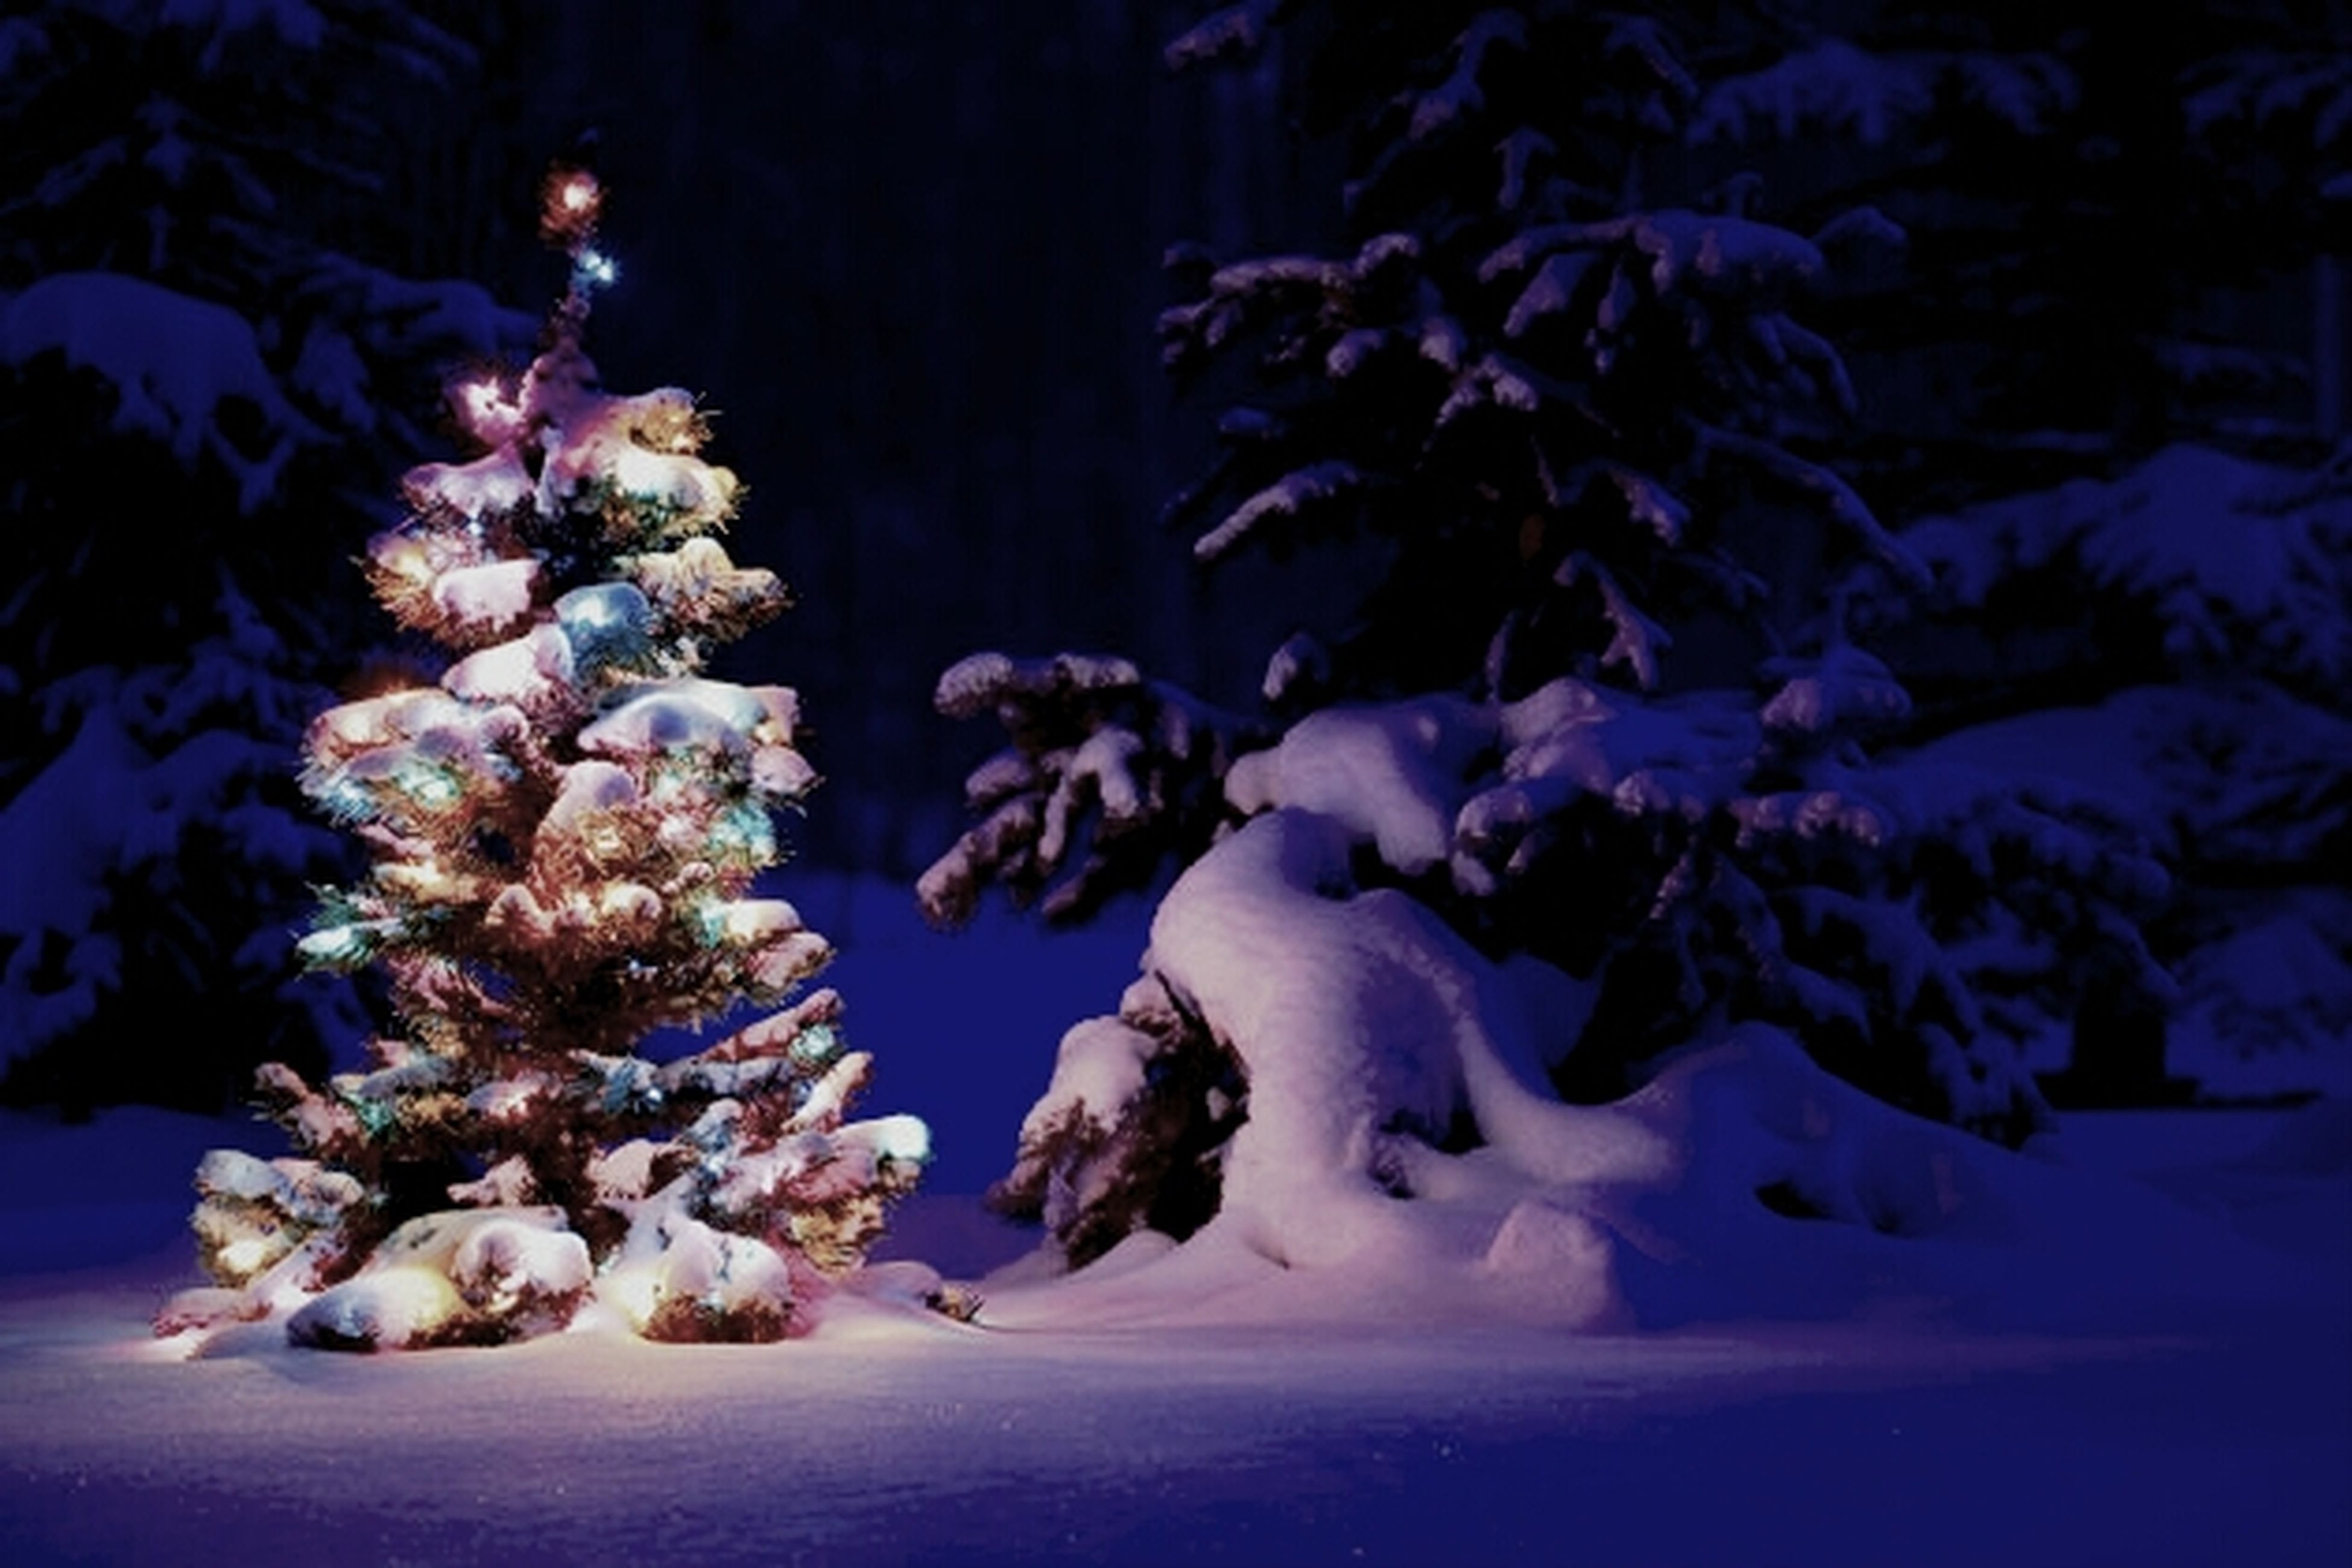 winter, cold temperature, snow, night, beauty in nature, nature, season, frozen, blue, white color, tranquility, no people, illuminated, close-up, growth, covering, flower, outdoors, copy space, weather